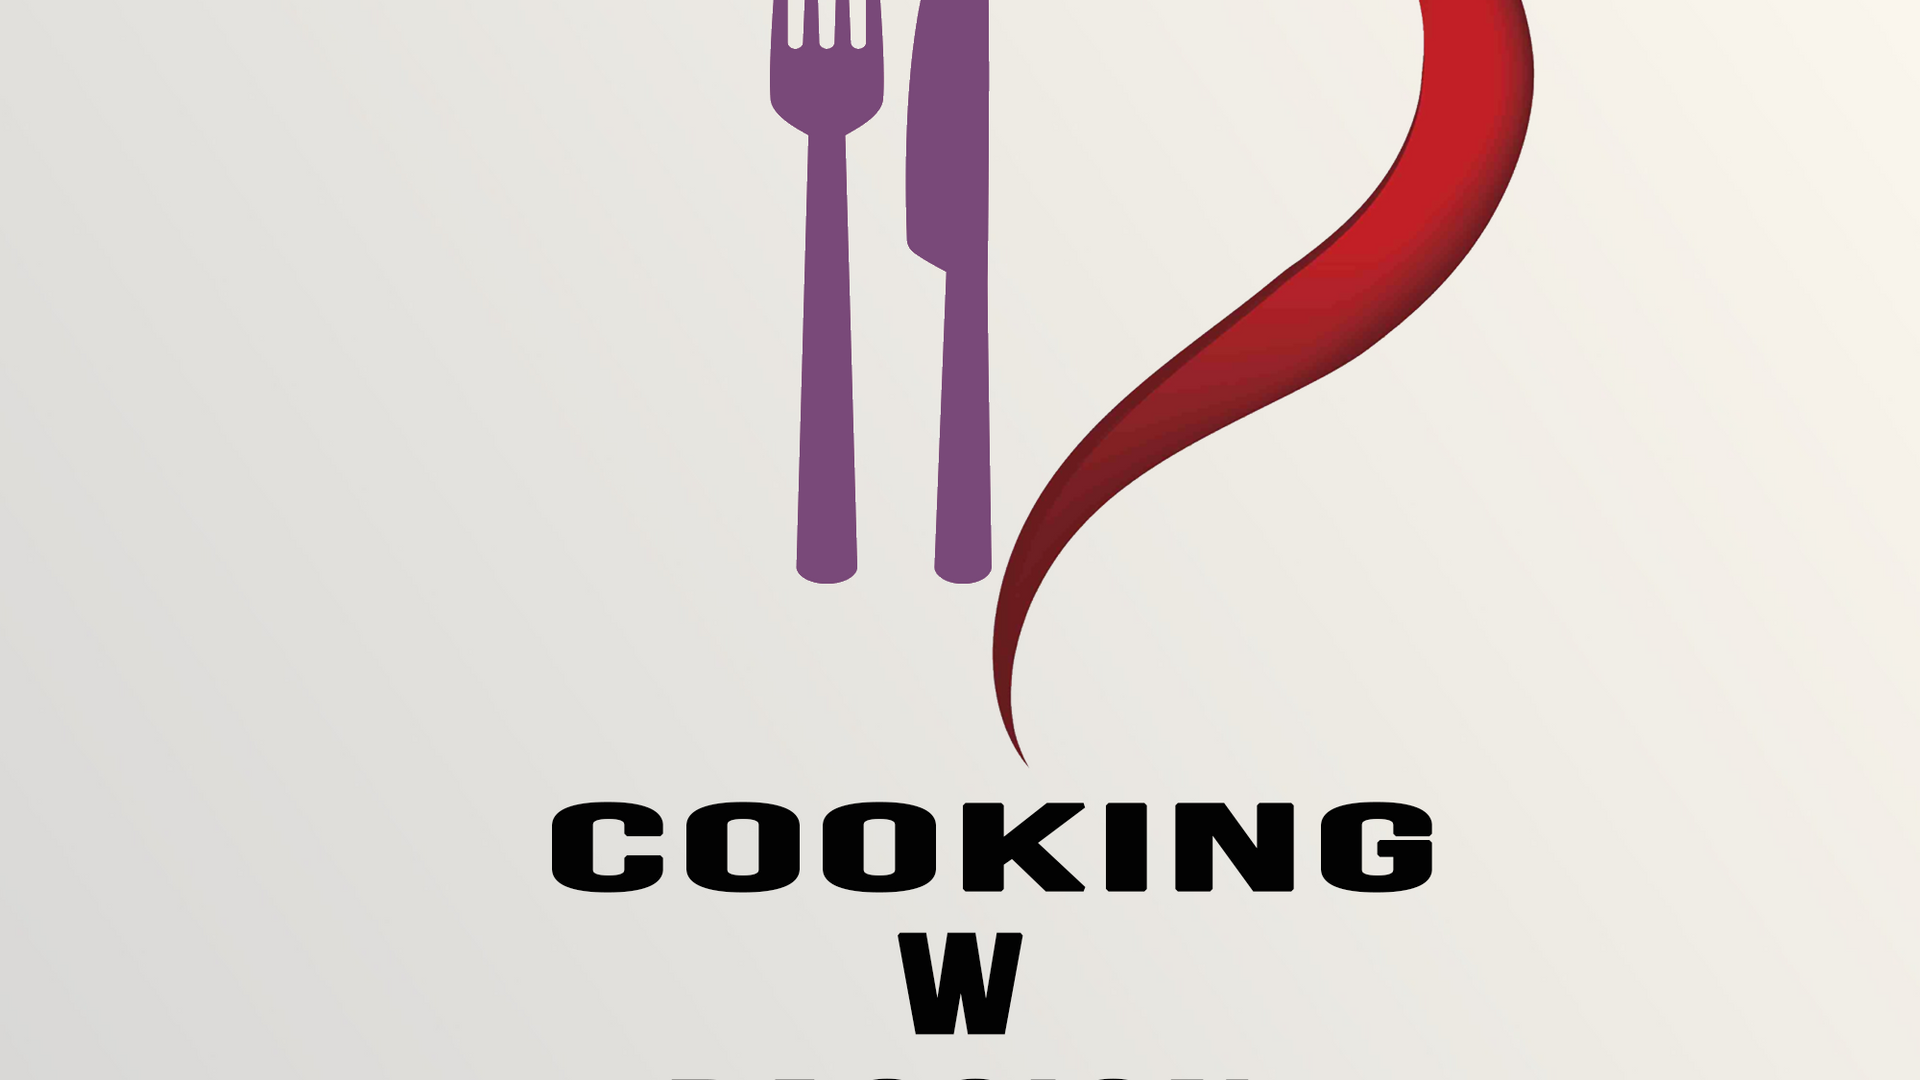 Cooking with Passion logo design.